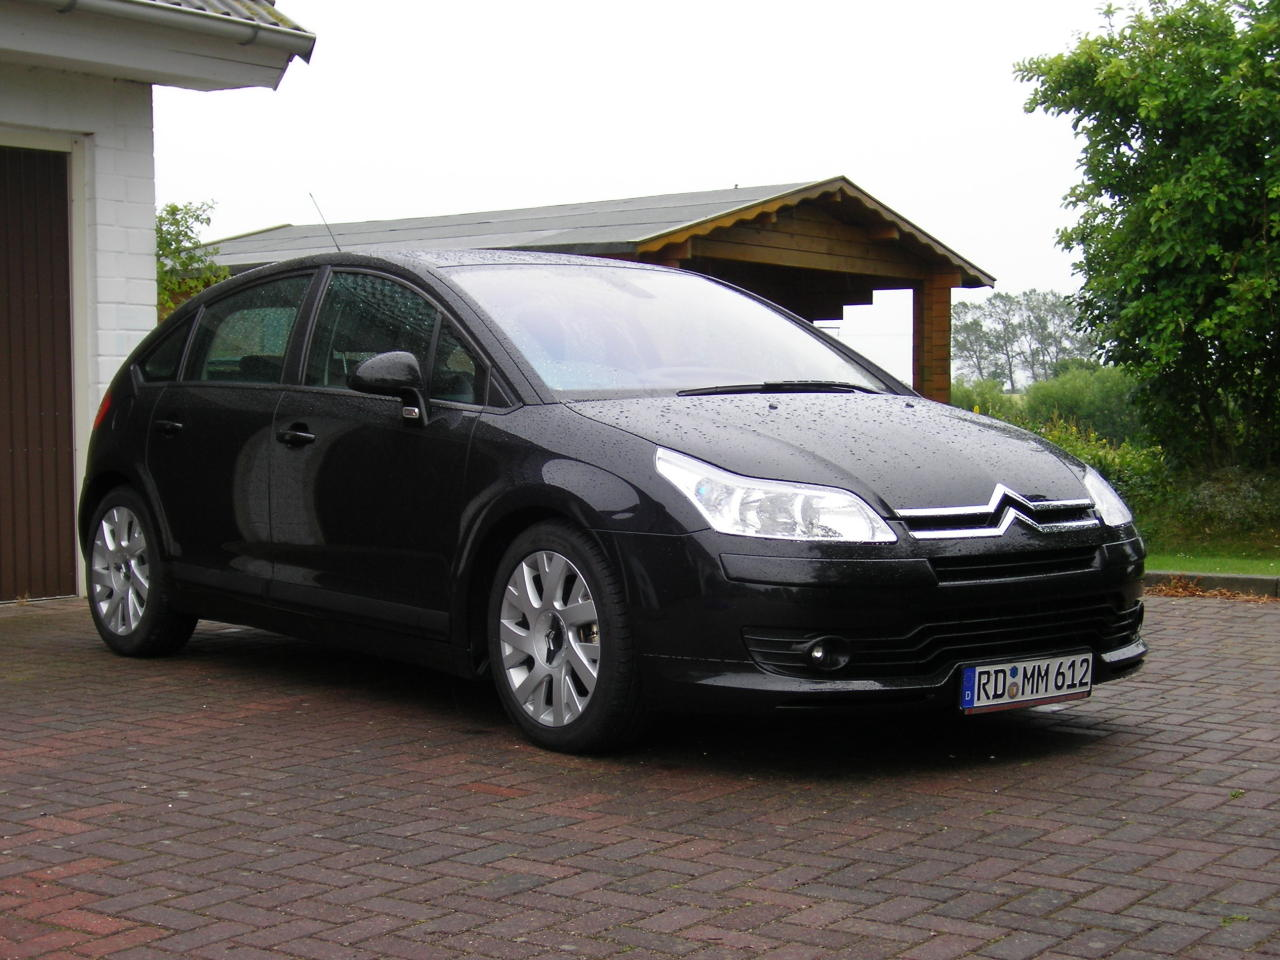 citroen c4 coupe 1 6 hdi vtr 10 details of cars on. Black Bedroom Furniture Sets. Home Design Ideas